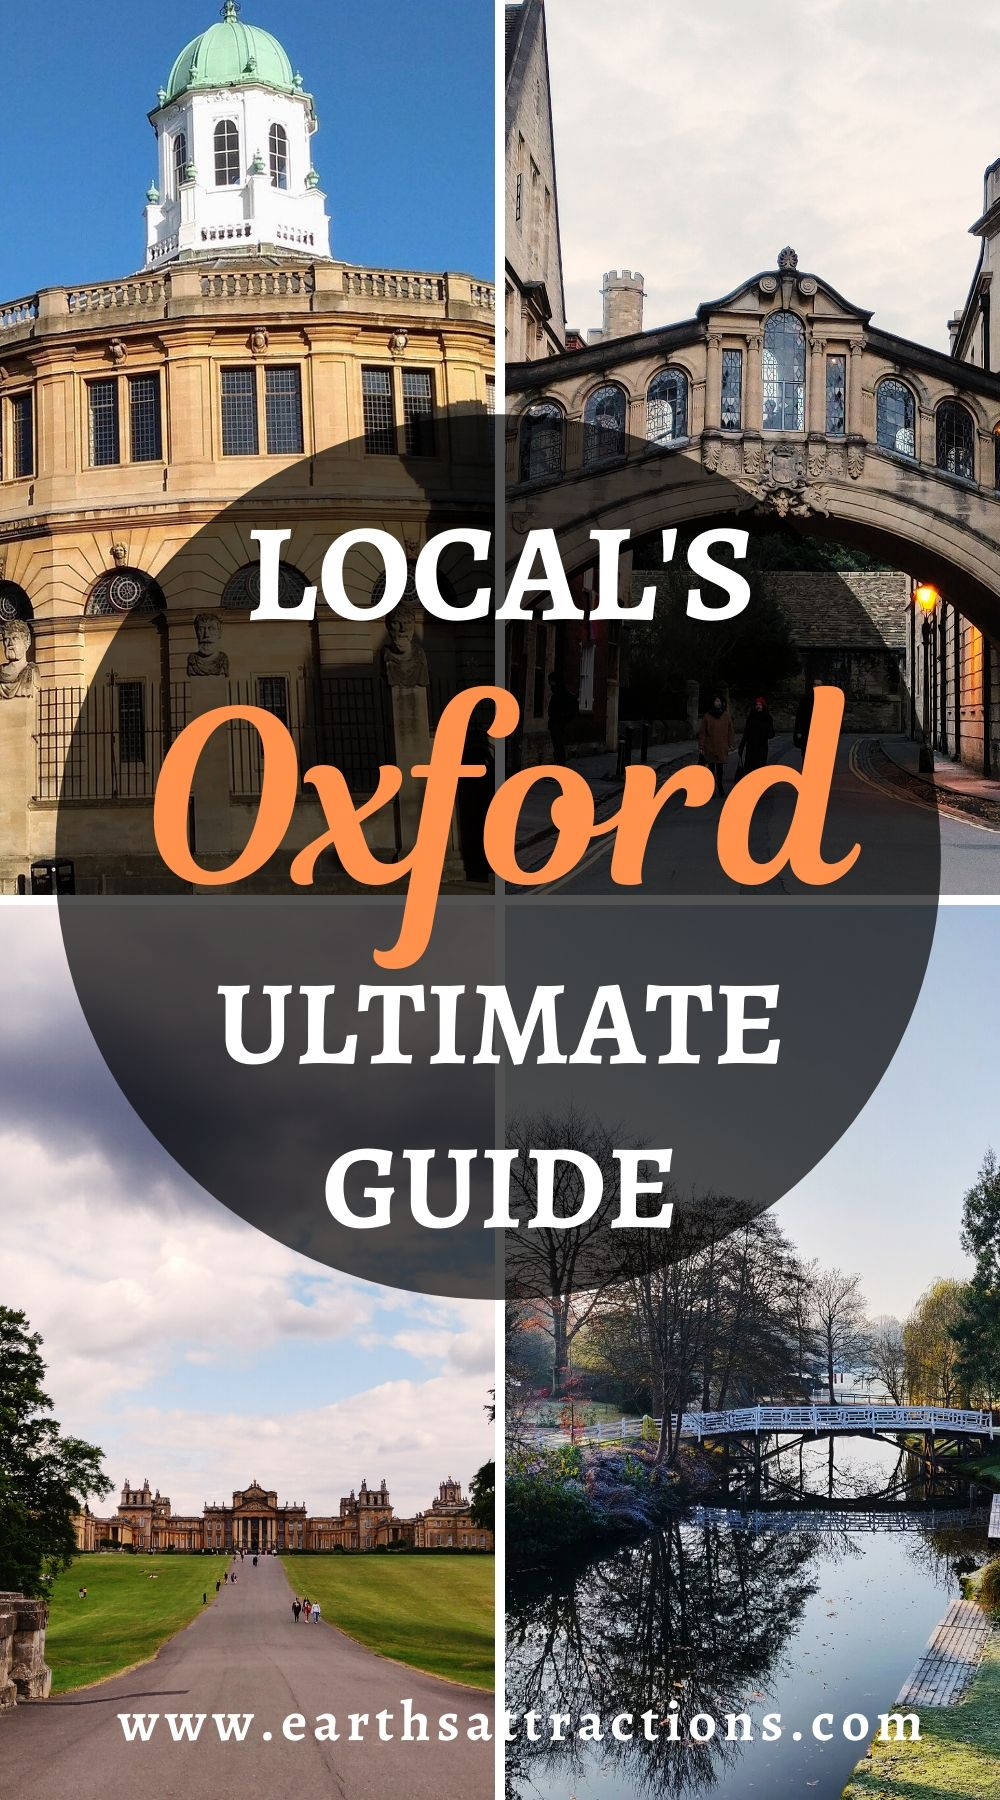 If you plan a trip to Oxford, England, then you need to read this comprehensive insider's travel guide to Oxford. You'll discover the best things to do in Oxford, including off the beaten path places to visit in Oxford, where to stay in Oxford, great restaurants in Oxford, and useful Oxford travel tips. #oxford #england #oxforduk #oxfordthingstodo #thingstodo #europetravel #earthsattractions #travelguides #oxfordguide #oxfordattractions #harrypotter